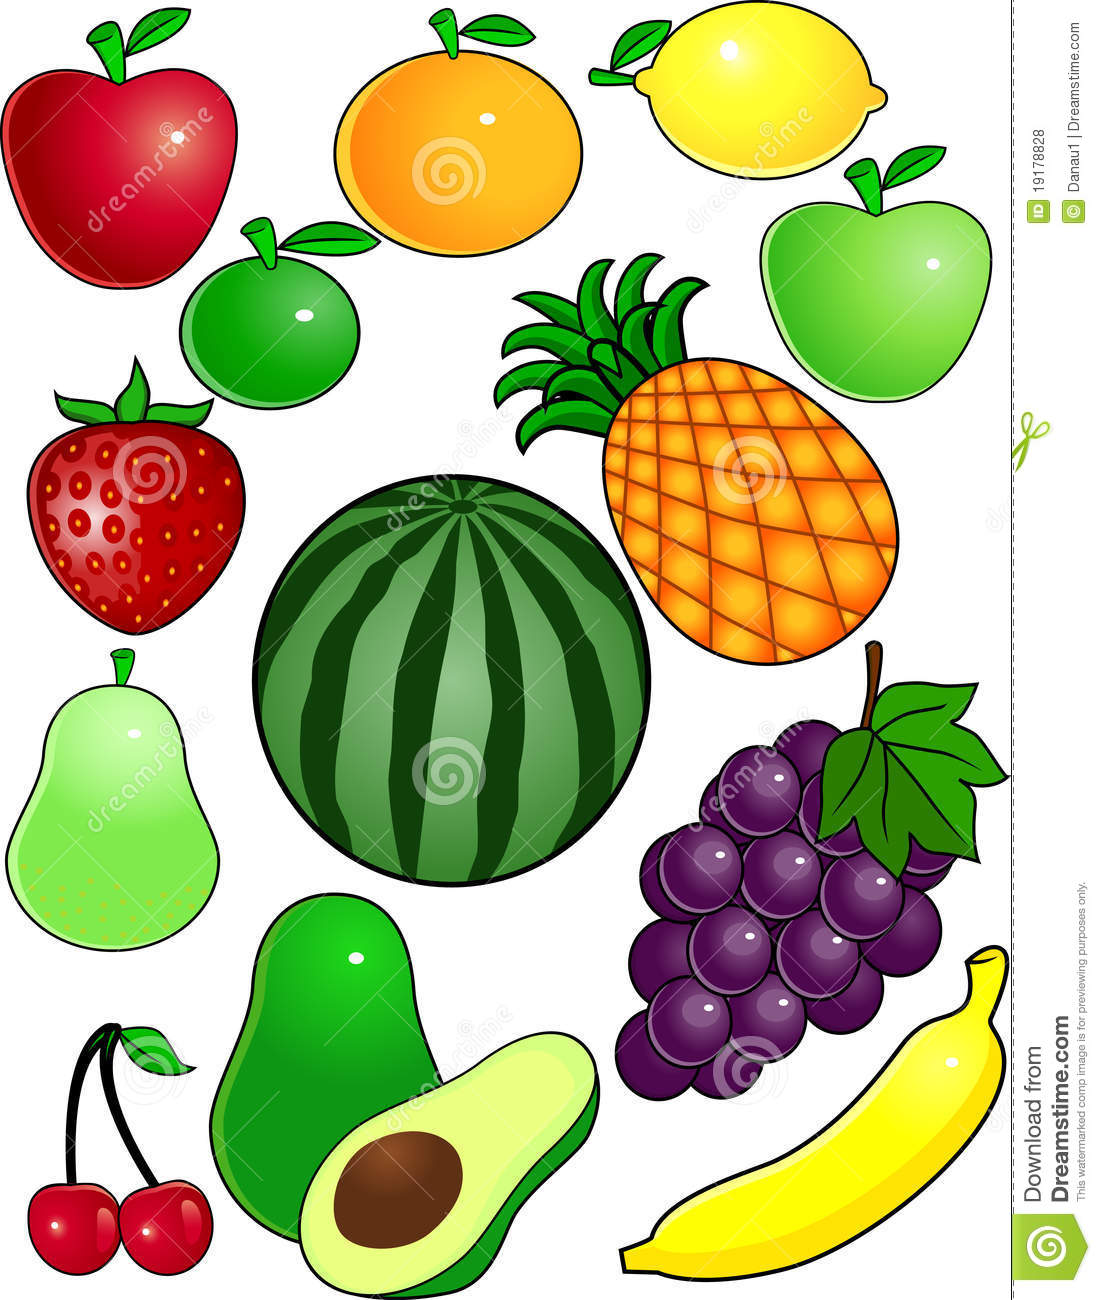 Fruit Cartoon Royalty Free Stock Photos - Image: 19178828